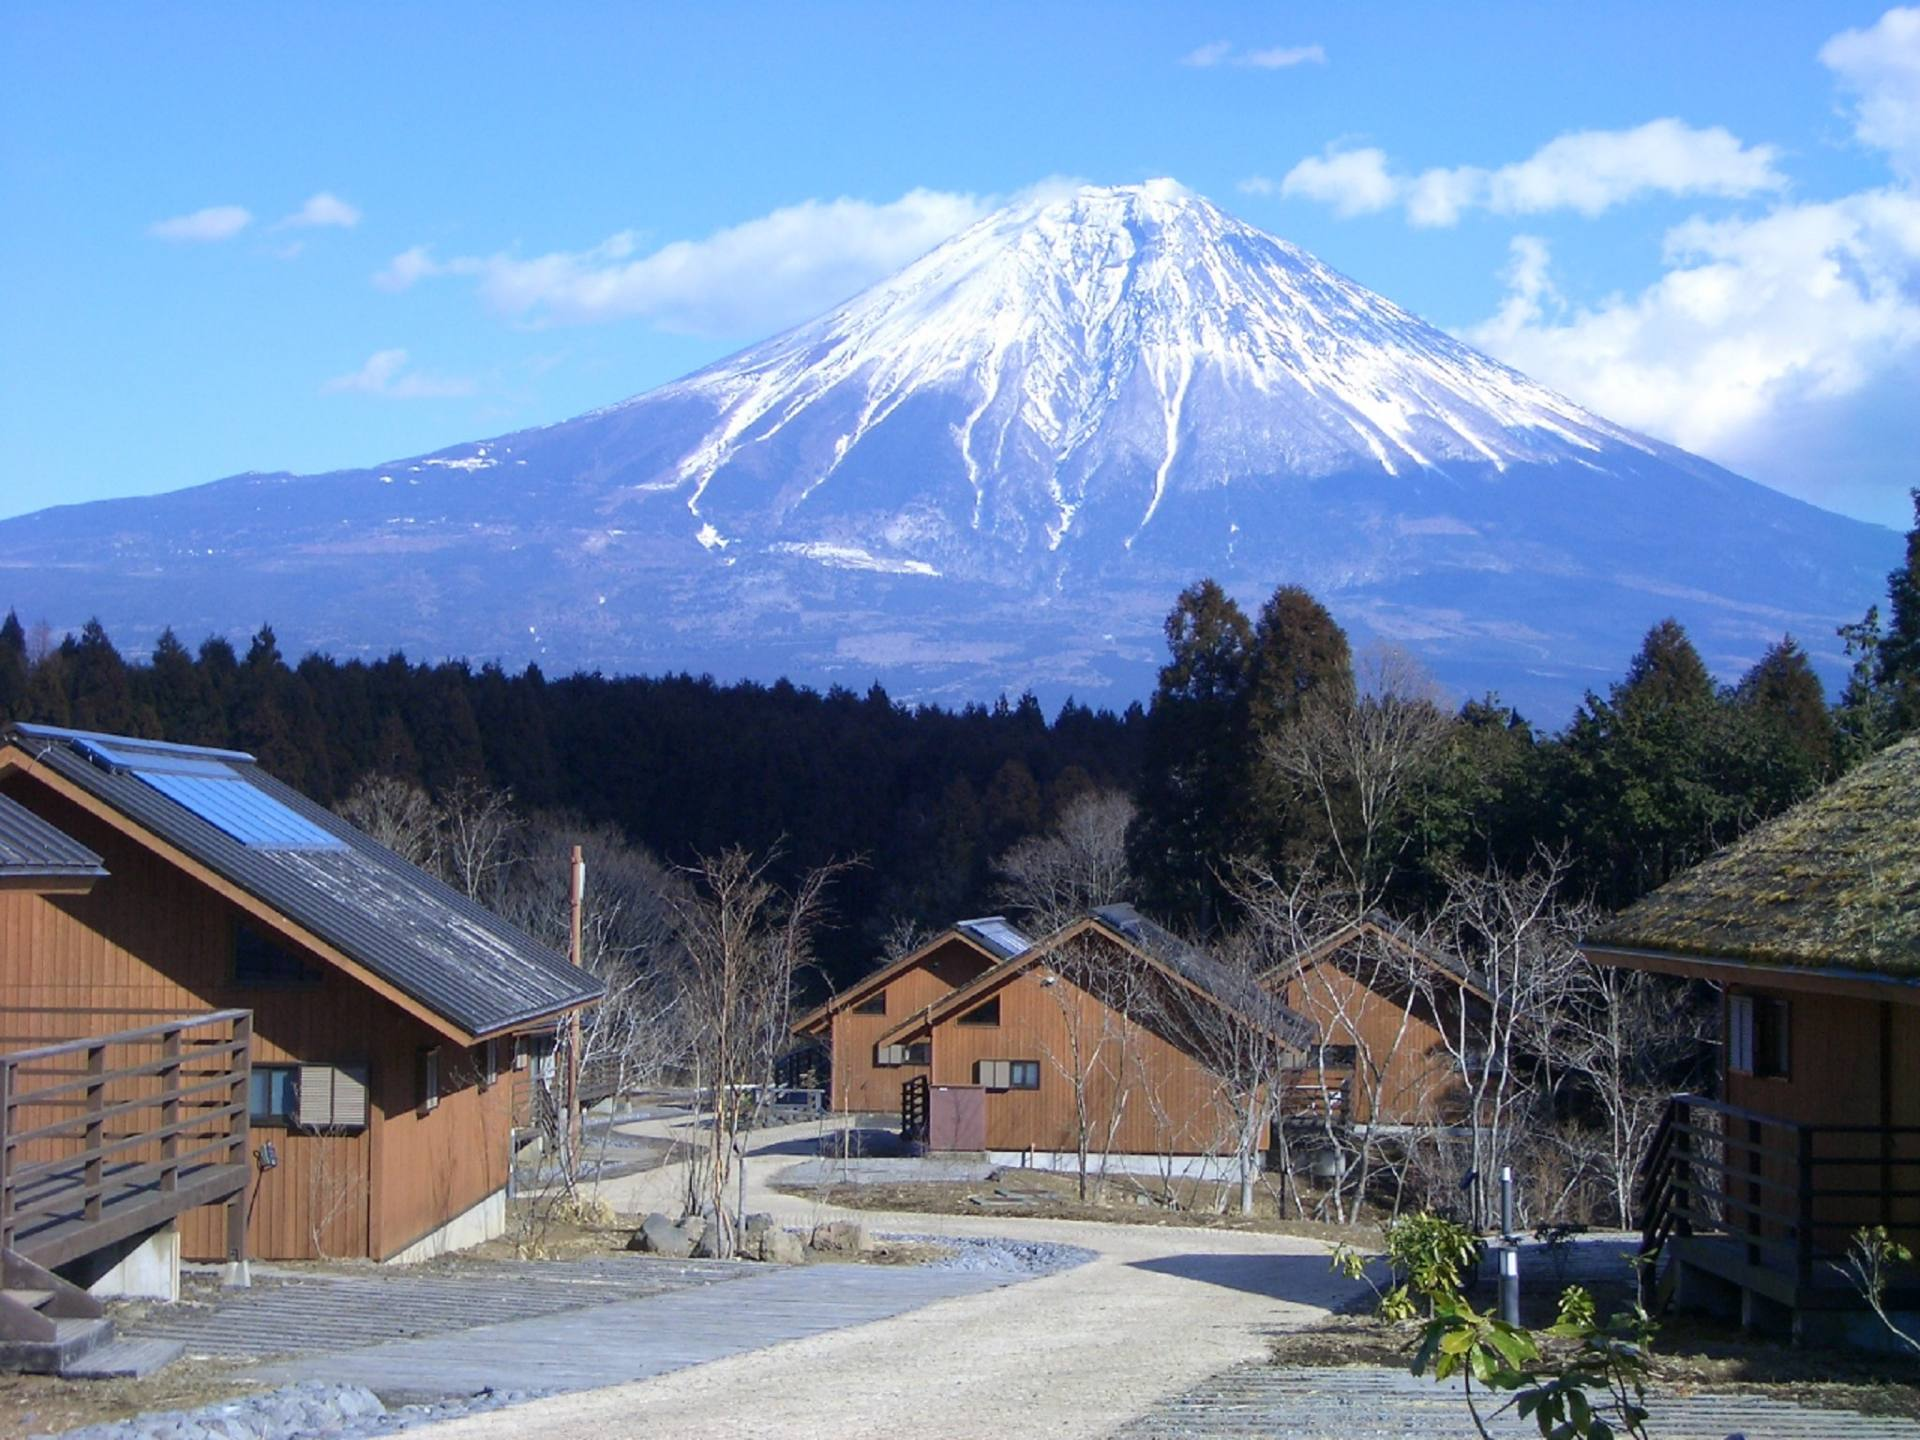 Cottages and Mt. Fuji